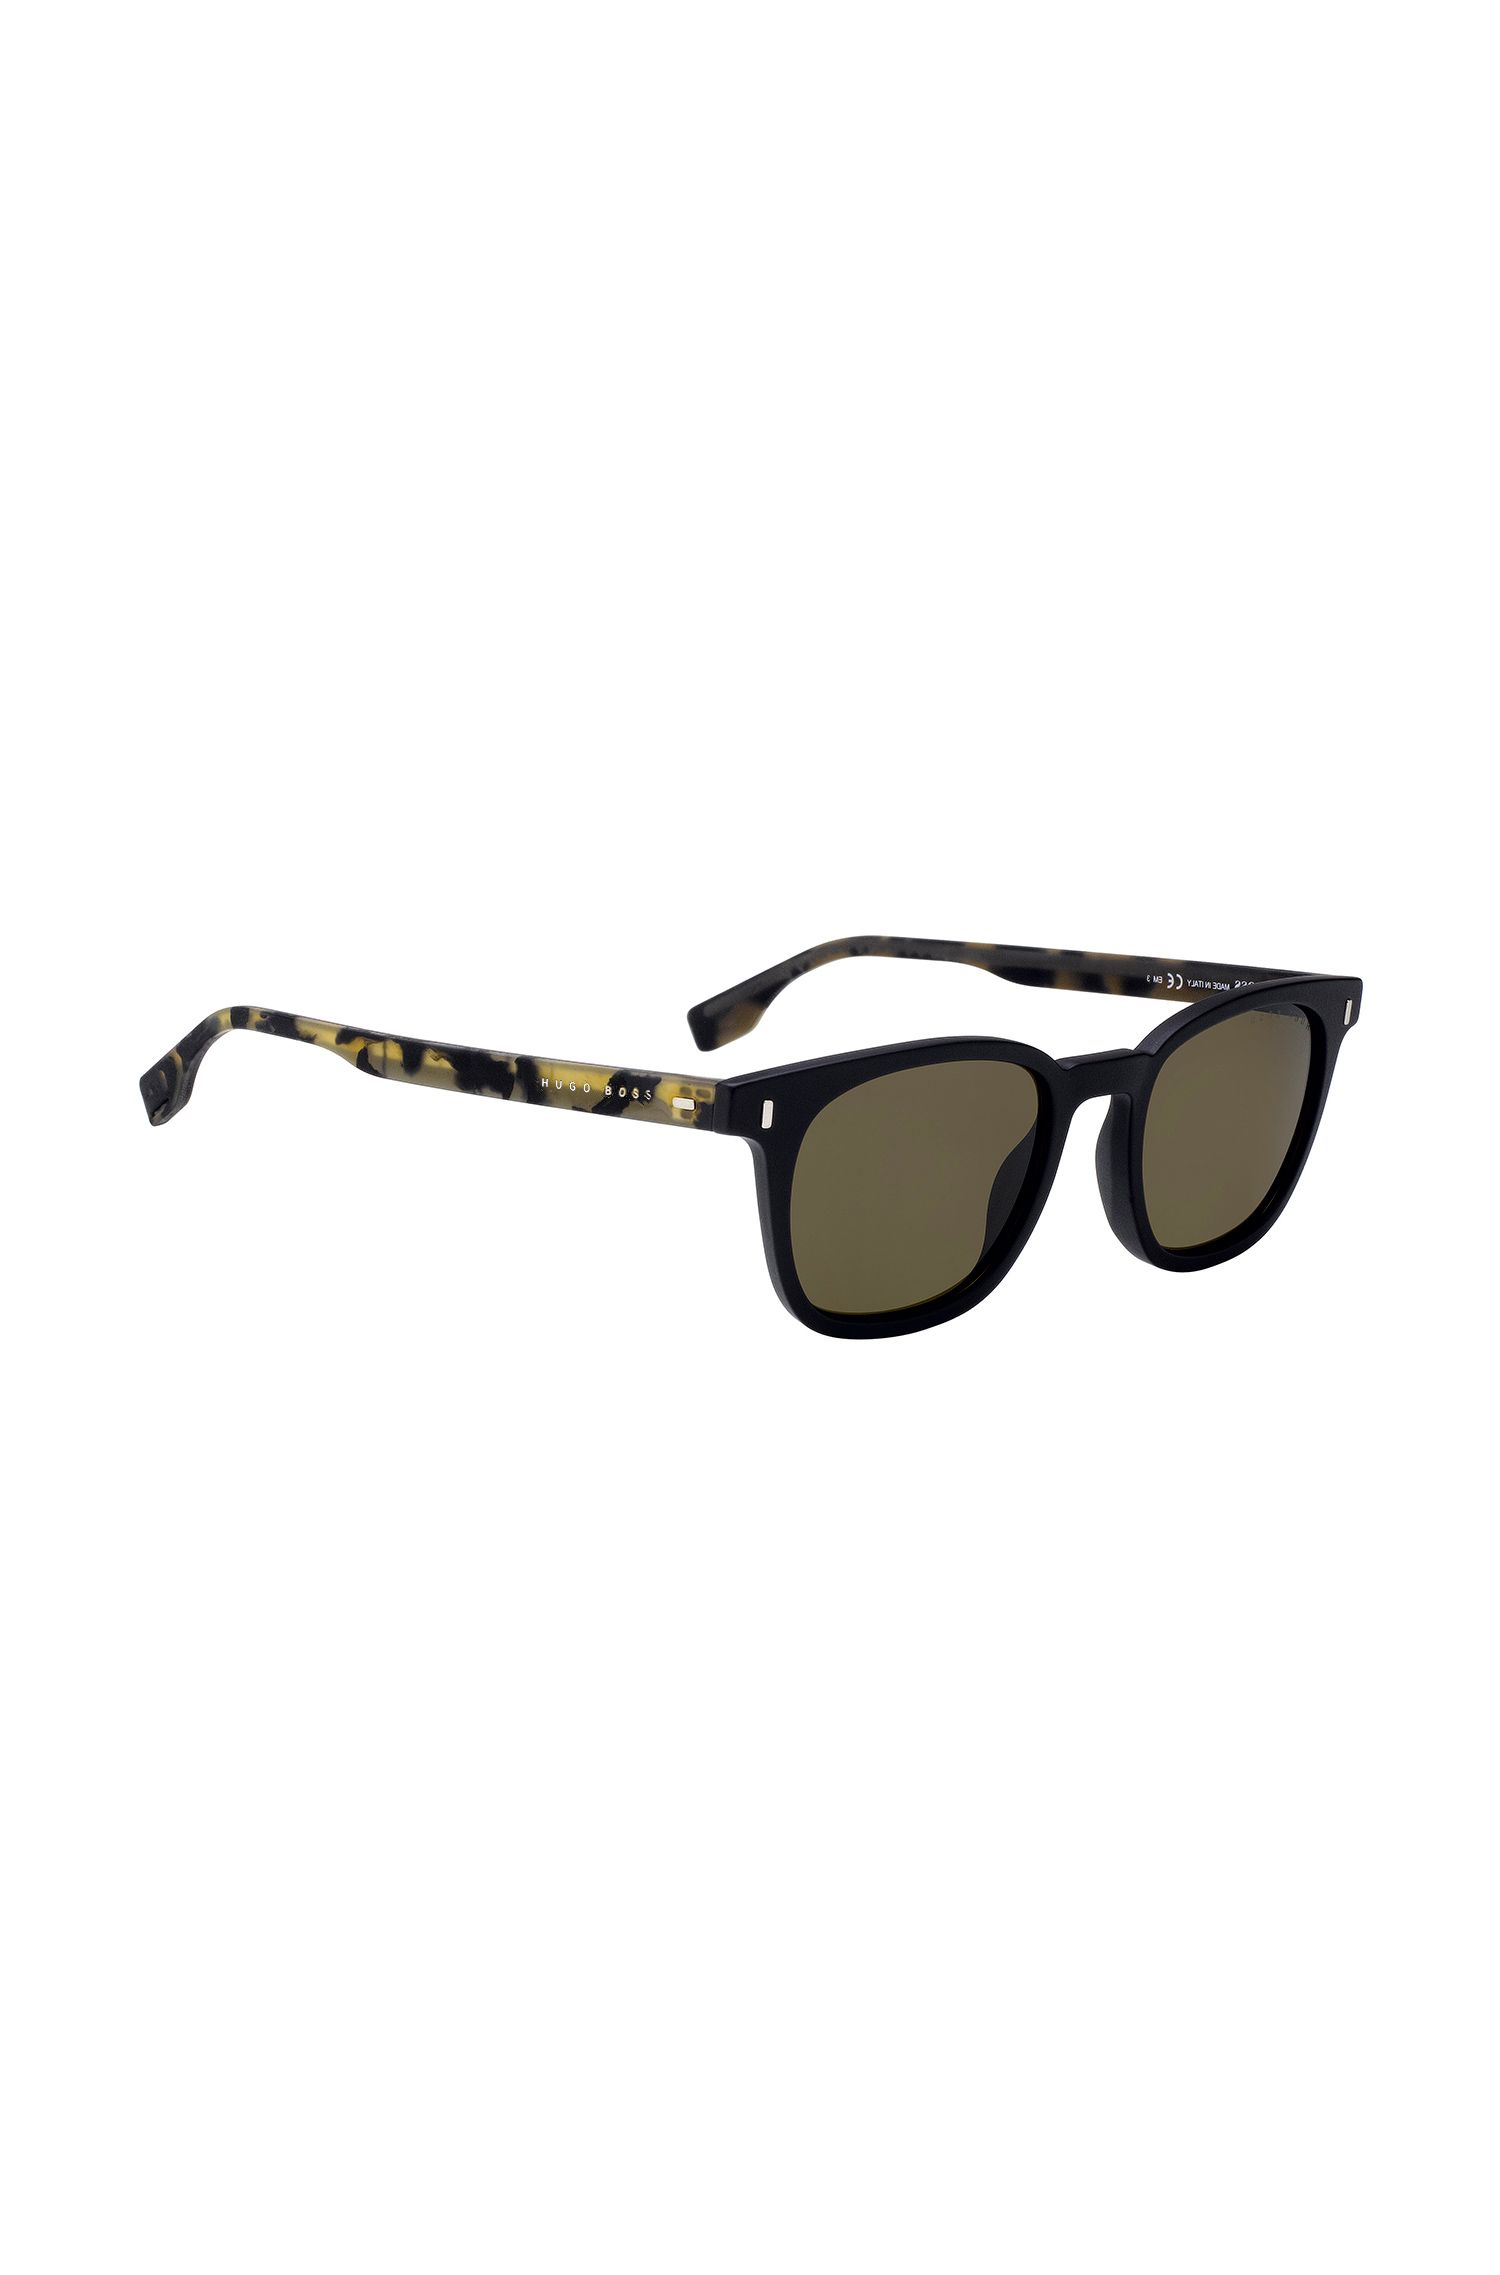 Sunglasses with rubber Havana temples